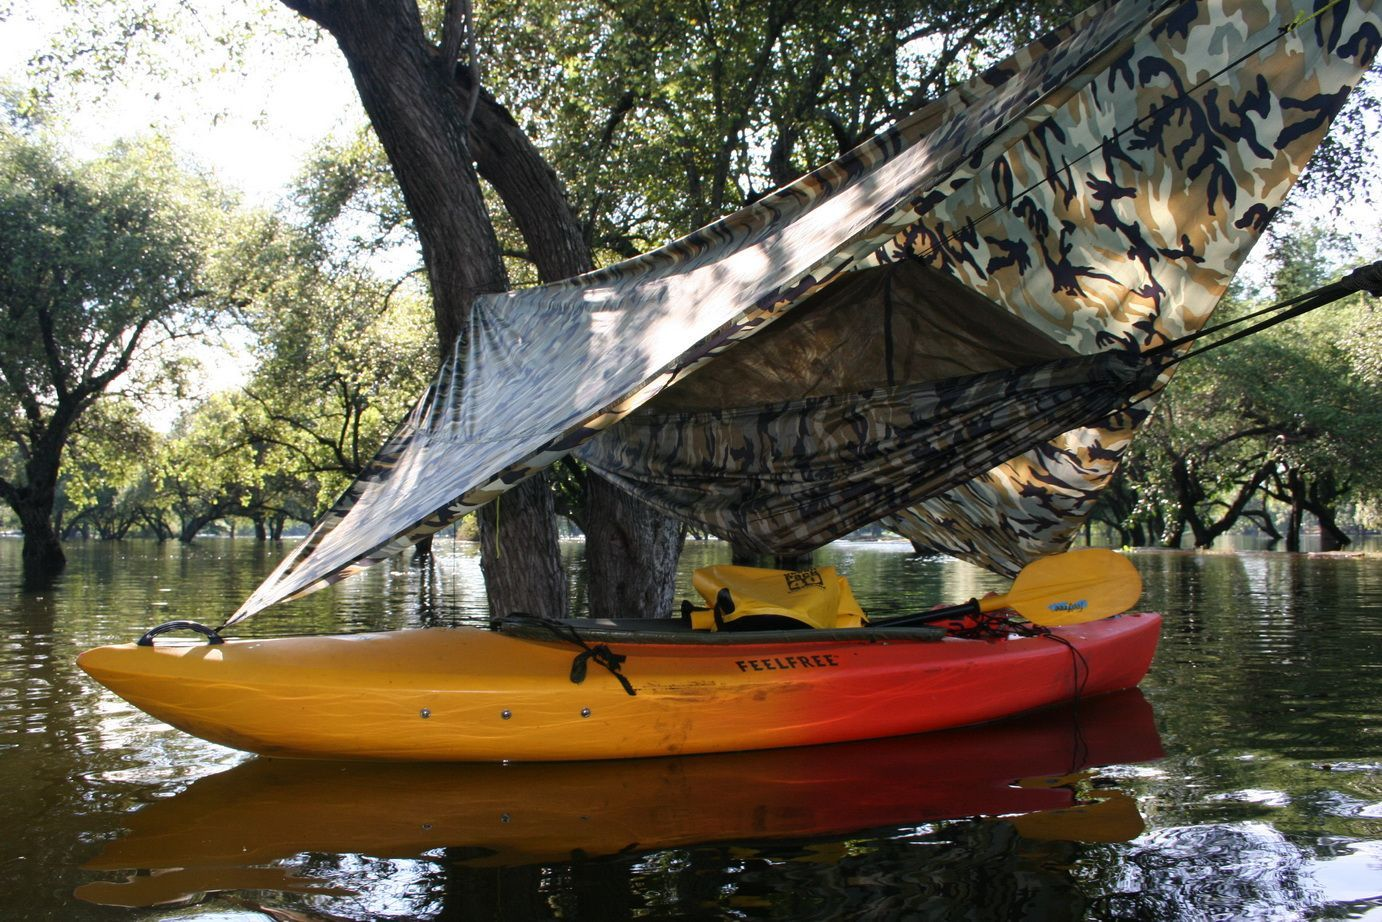 Jungle Hammock With Netting Hung In Tree Over Kayak And